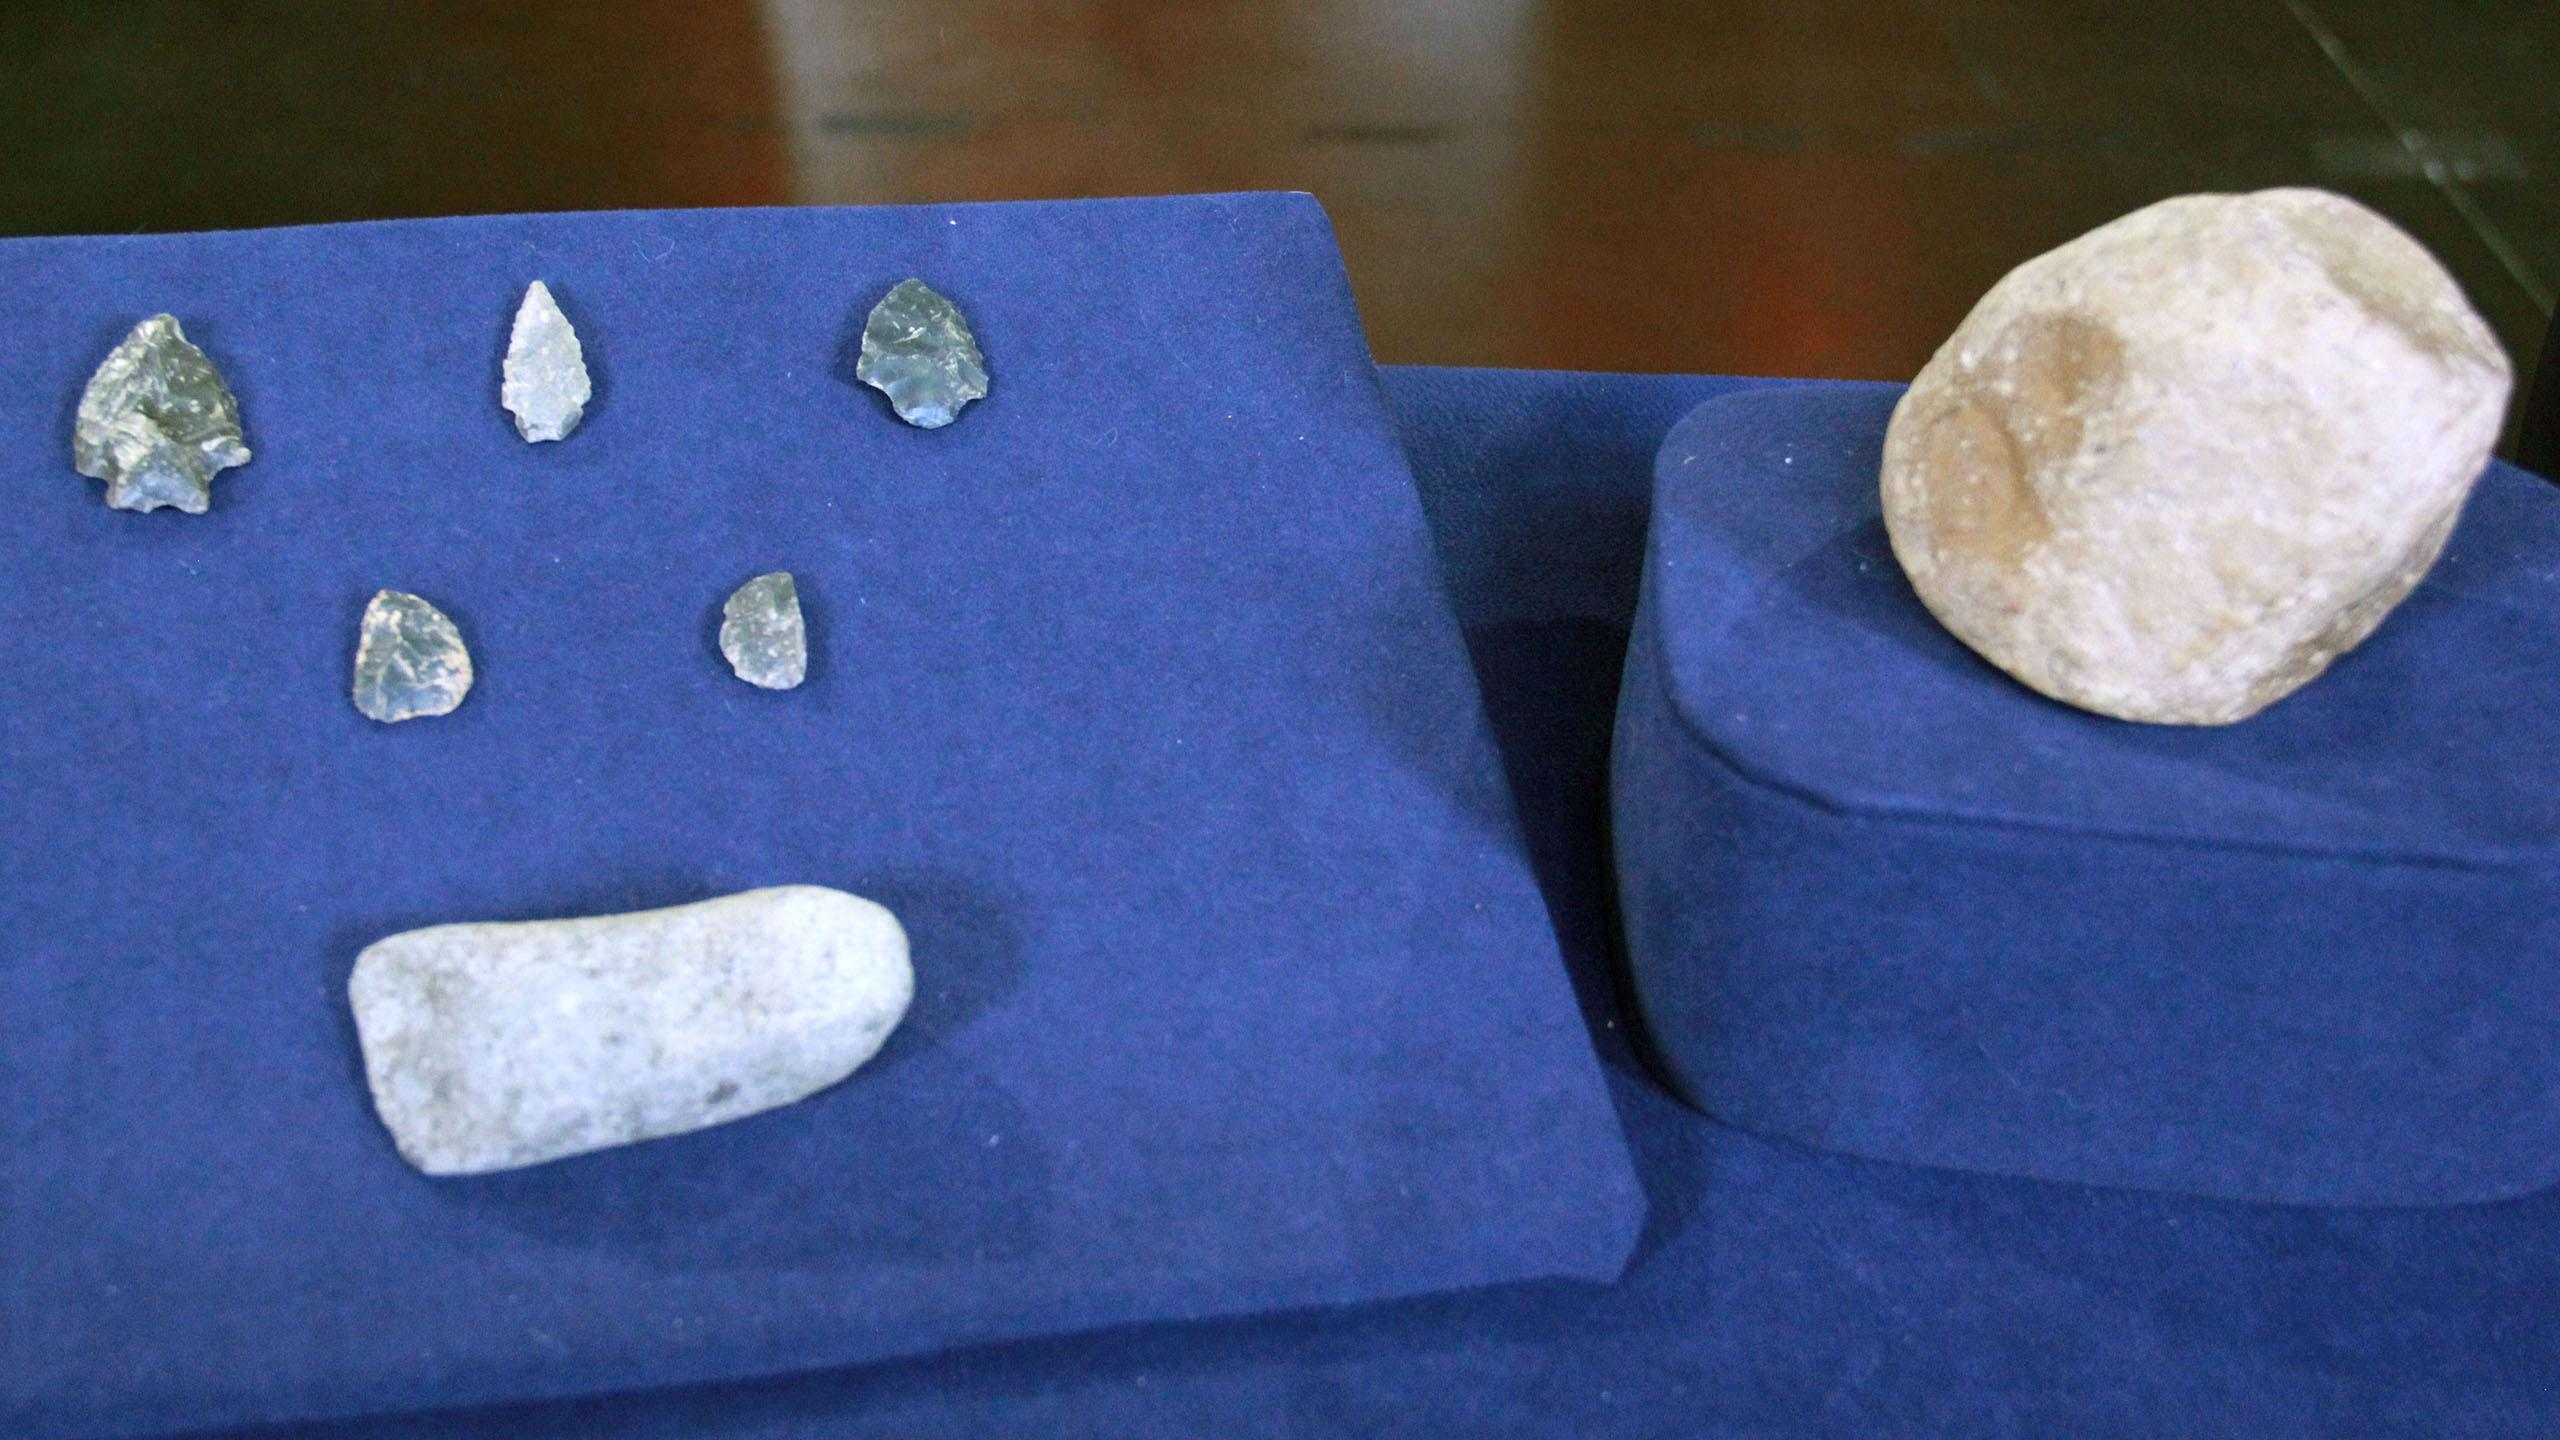 S21: Web Appraisal: Stone Tools & Flint Points Collection